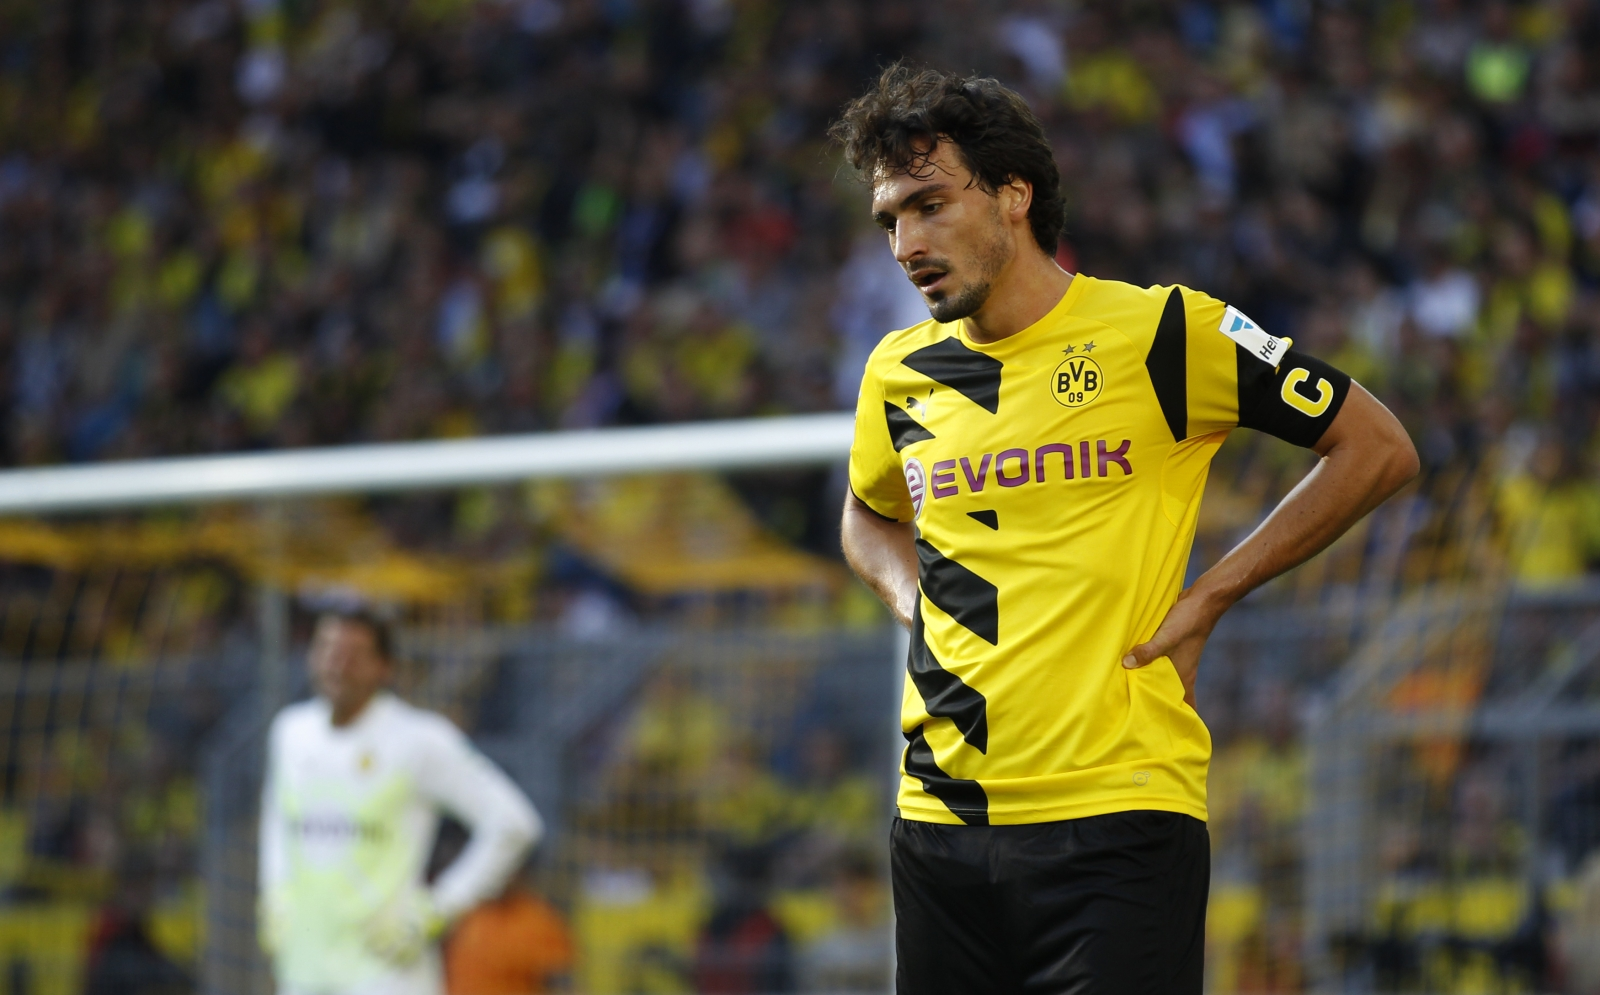 Mats Hummels can be sold in the summer says Borussia Dortmund CEO